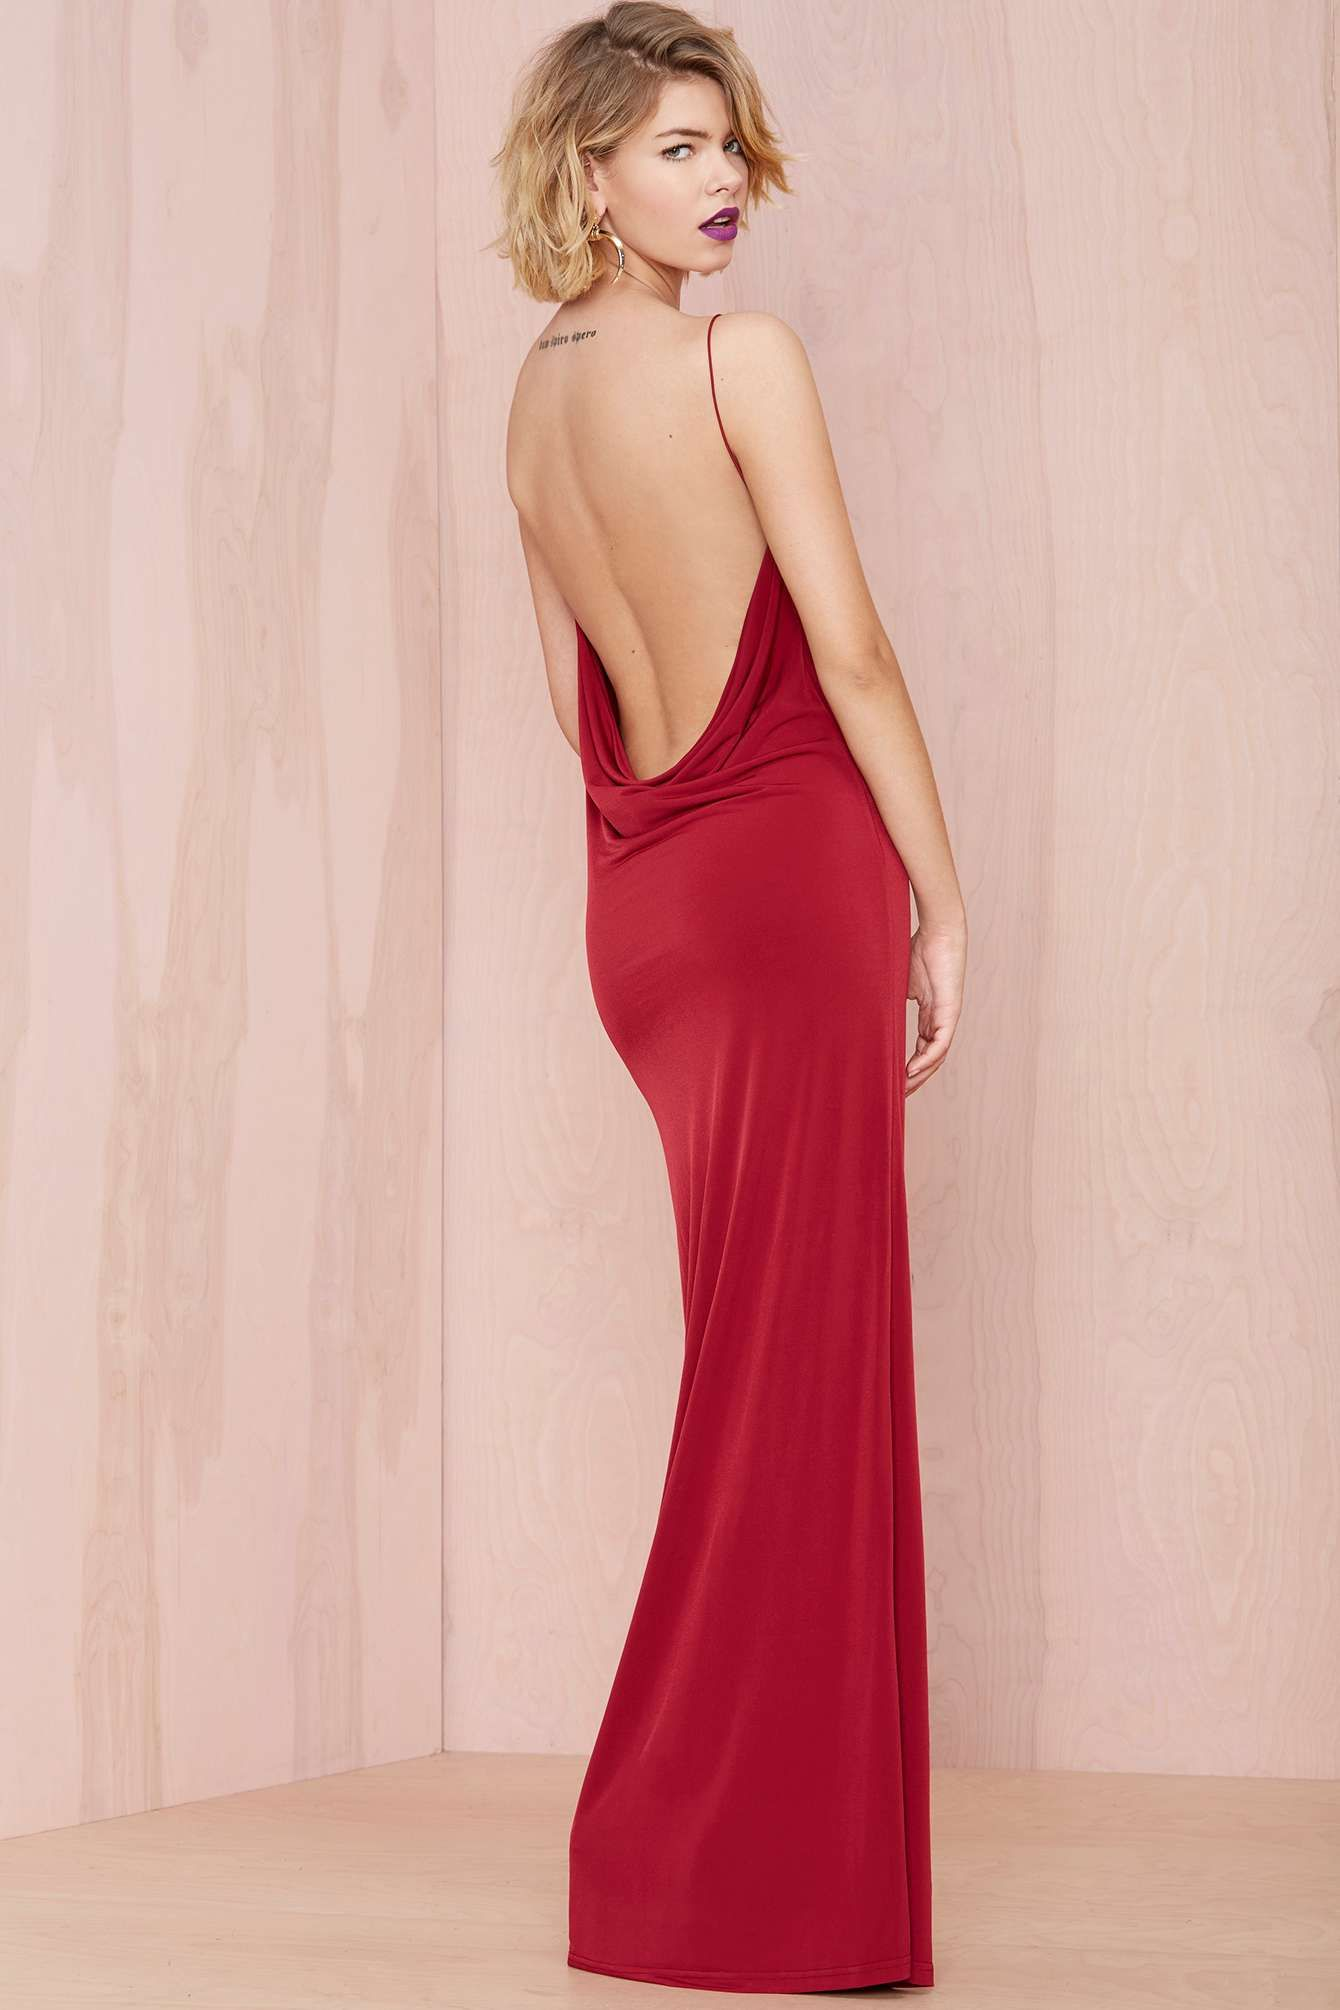 Backless gown | obsessed with the dress.... | Pinterest | Rojo ...